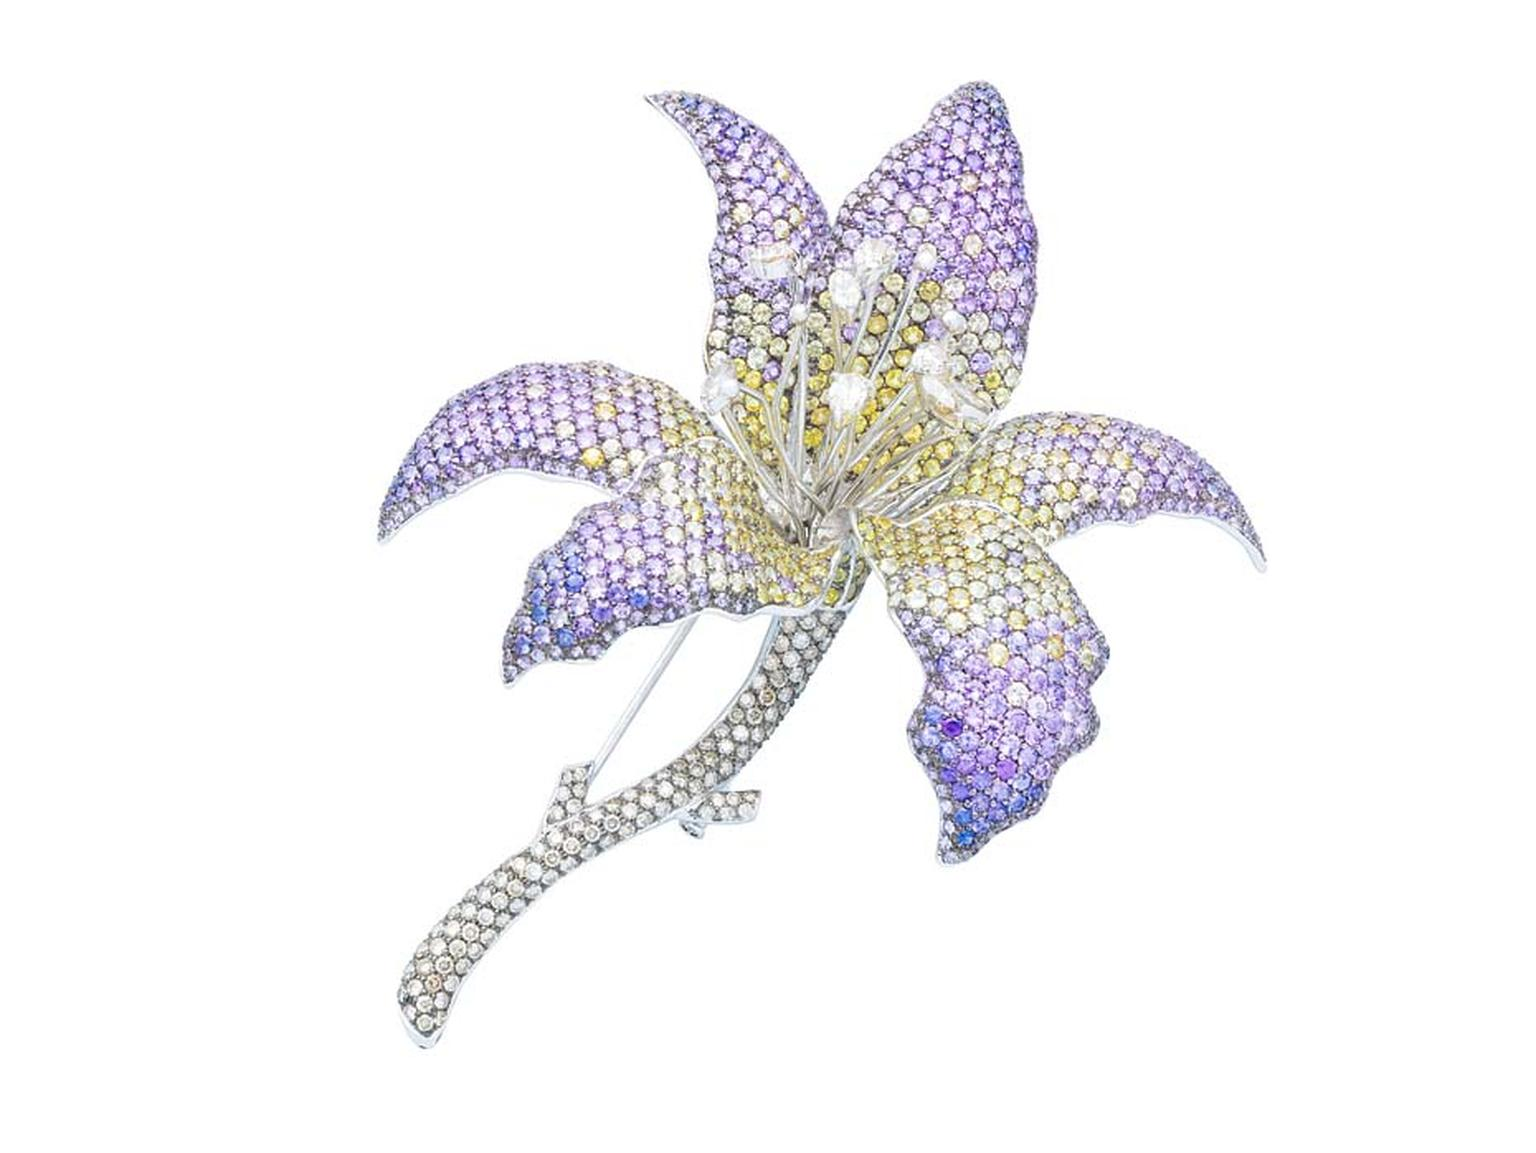 Damian by Mischelle Orchid brooch with yellow and purple sapphires